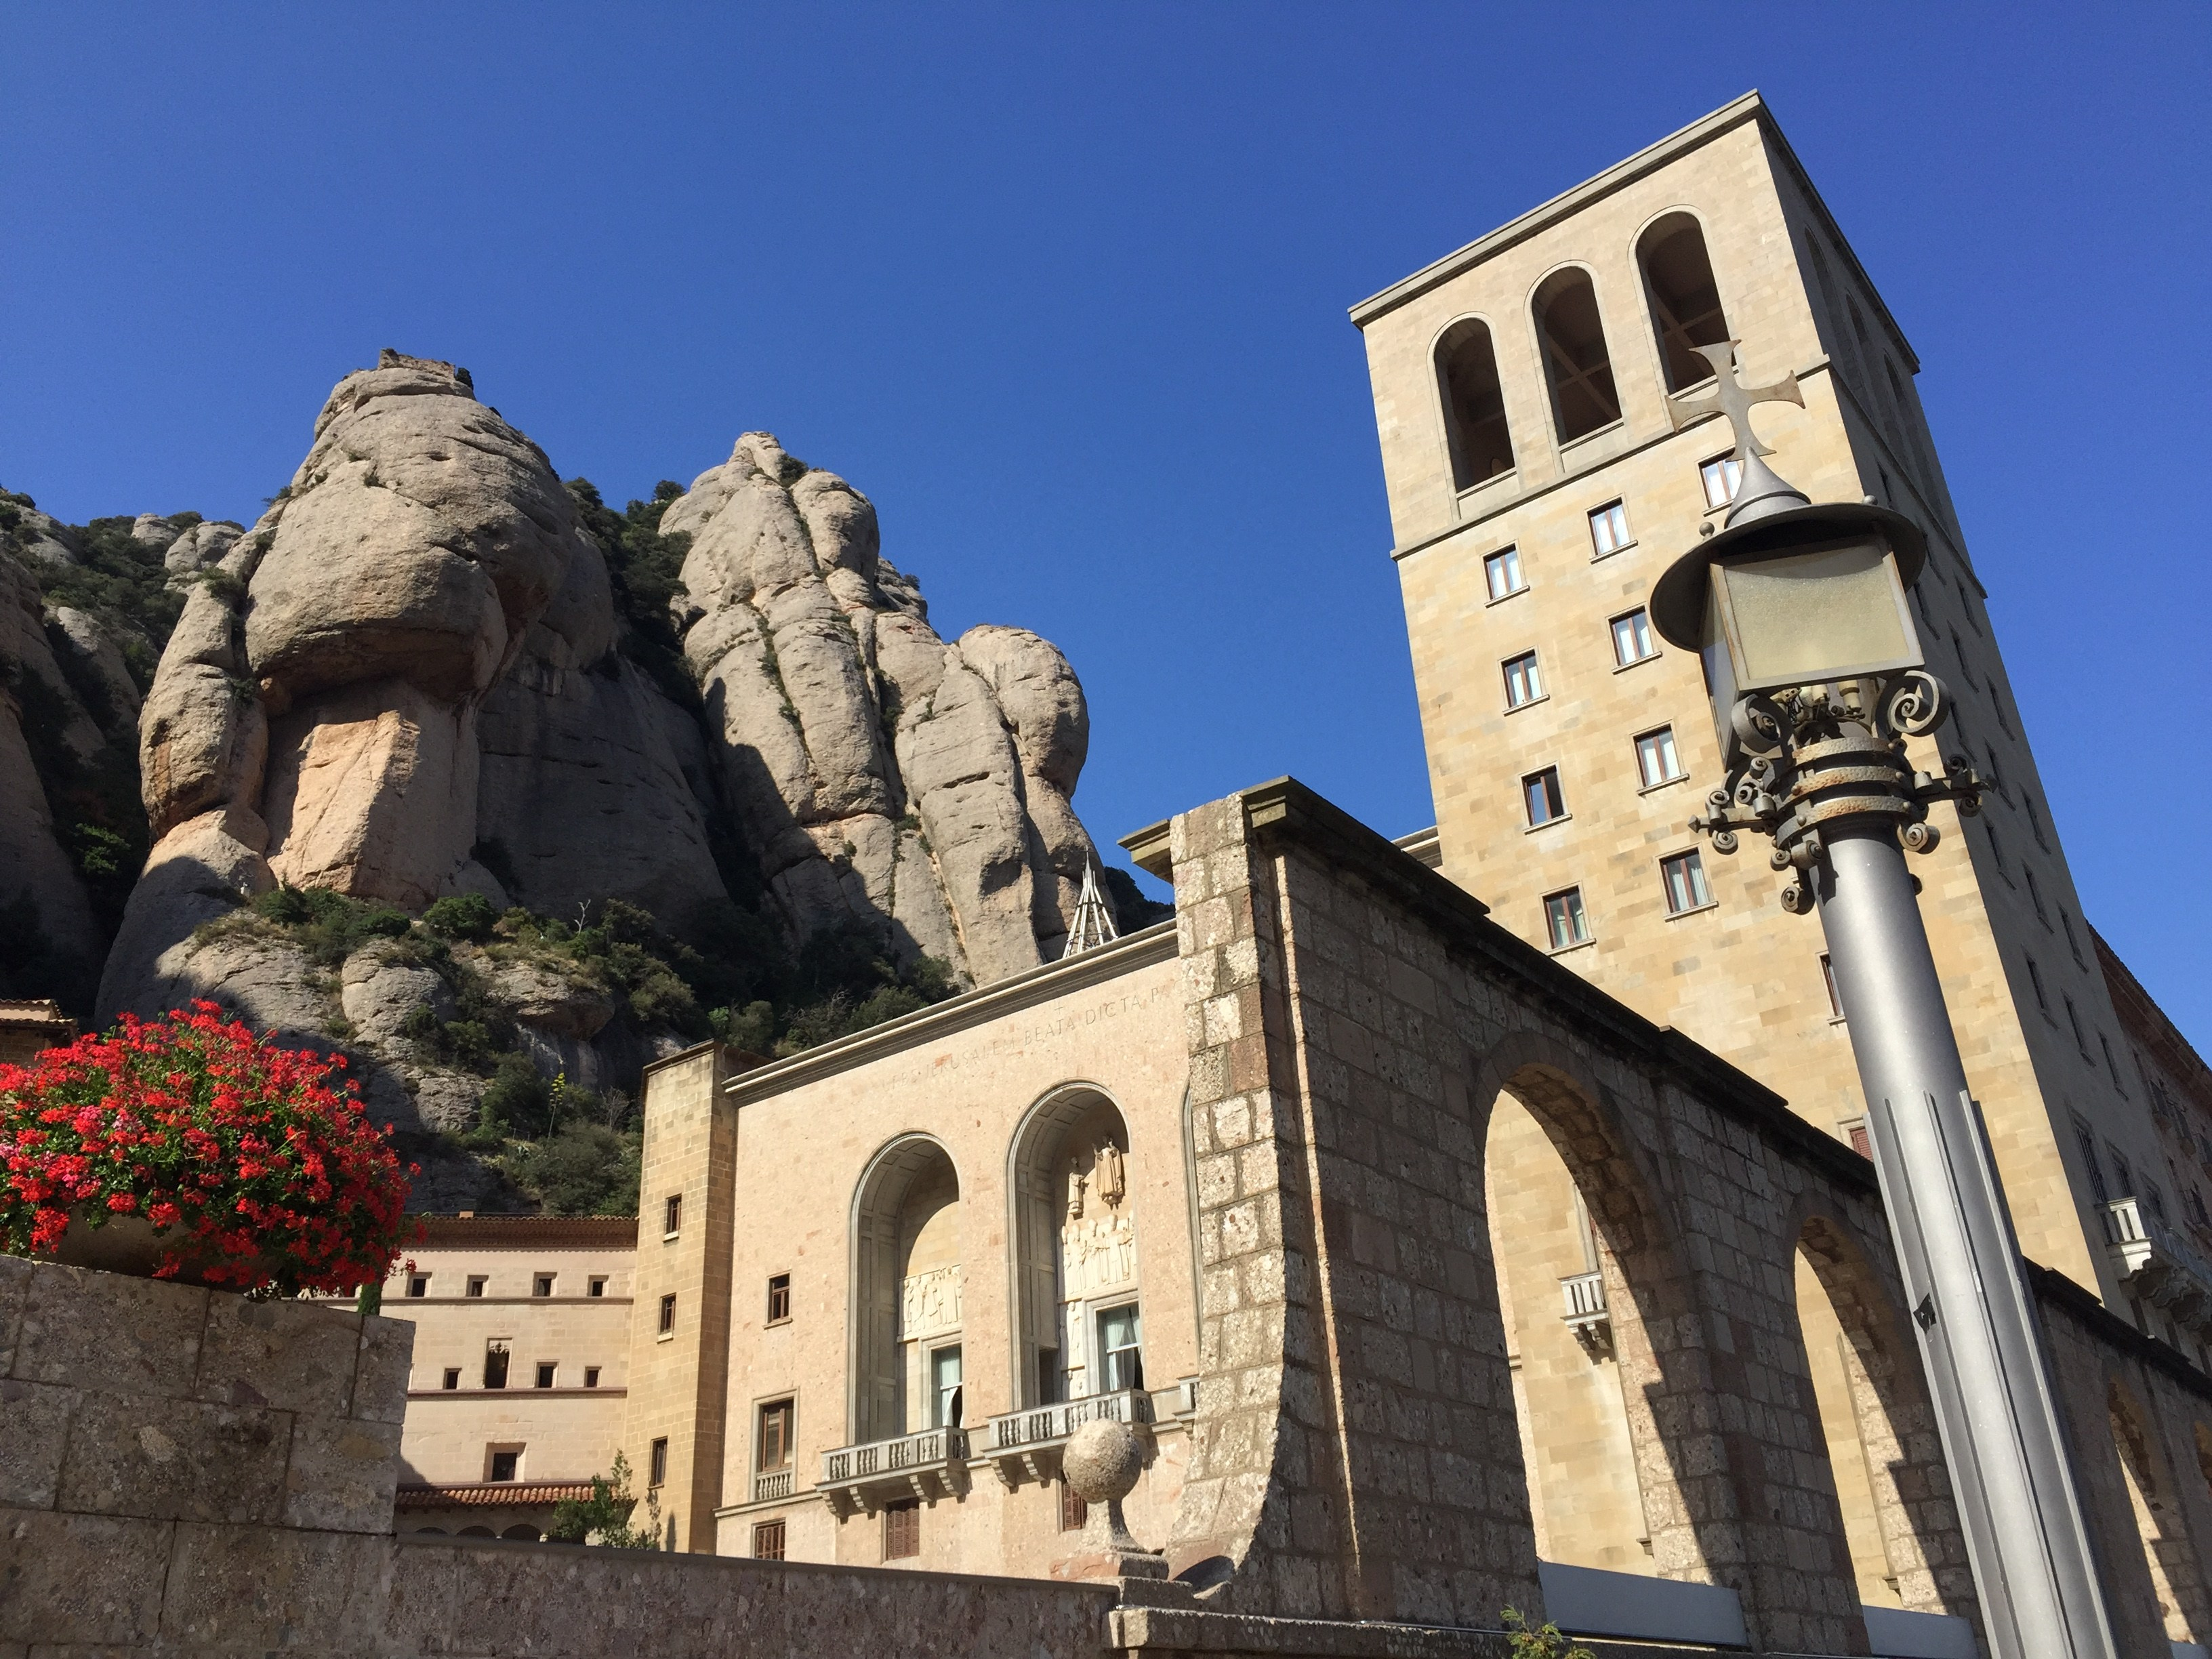 National Museum of Montserrat Americas, Montserrat : A day trip to from Barcelona • Outside Suburbia